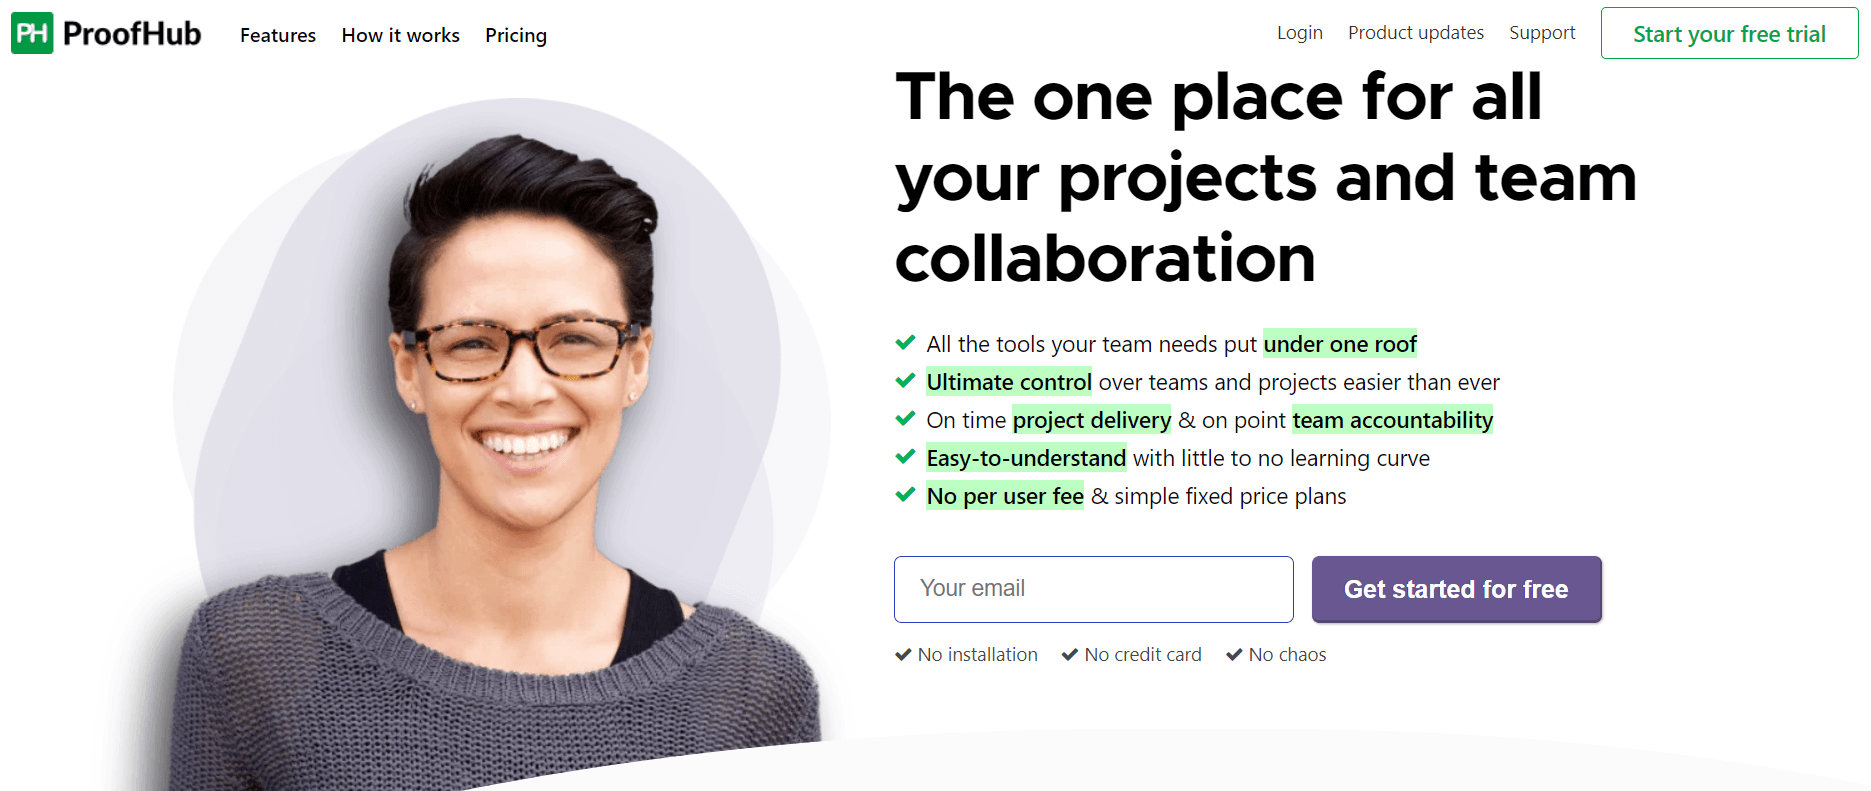 Proofhub features